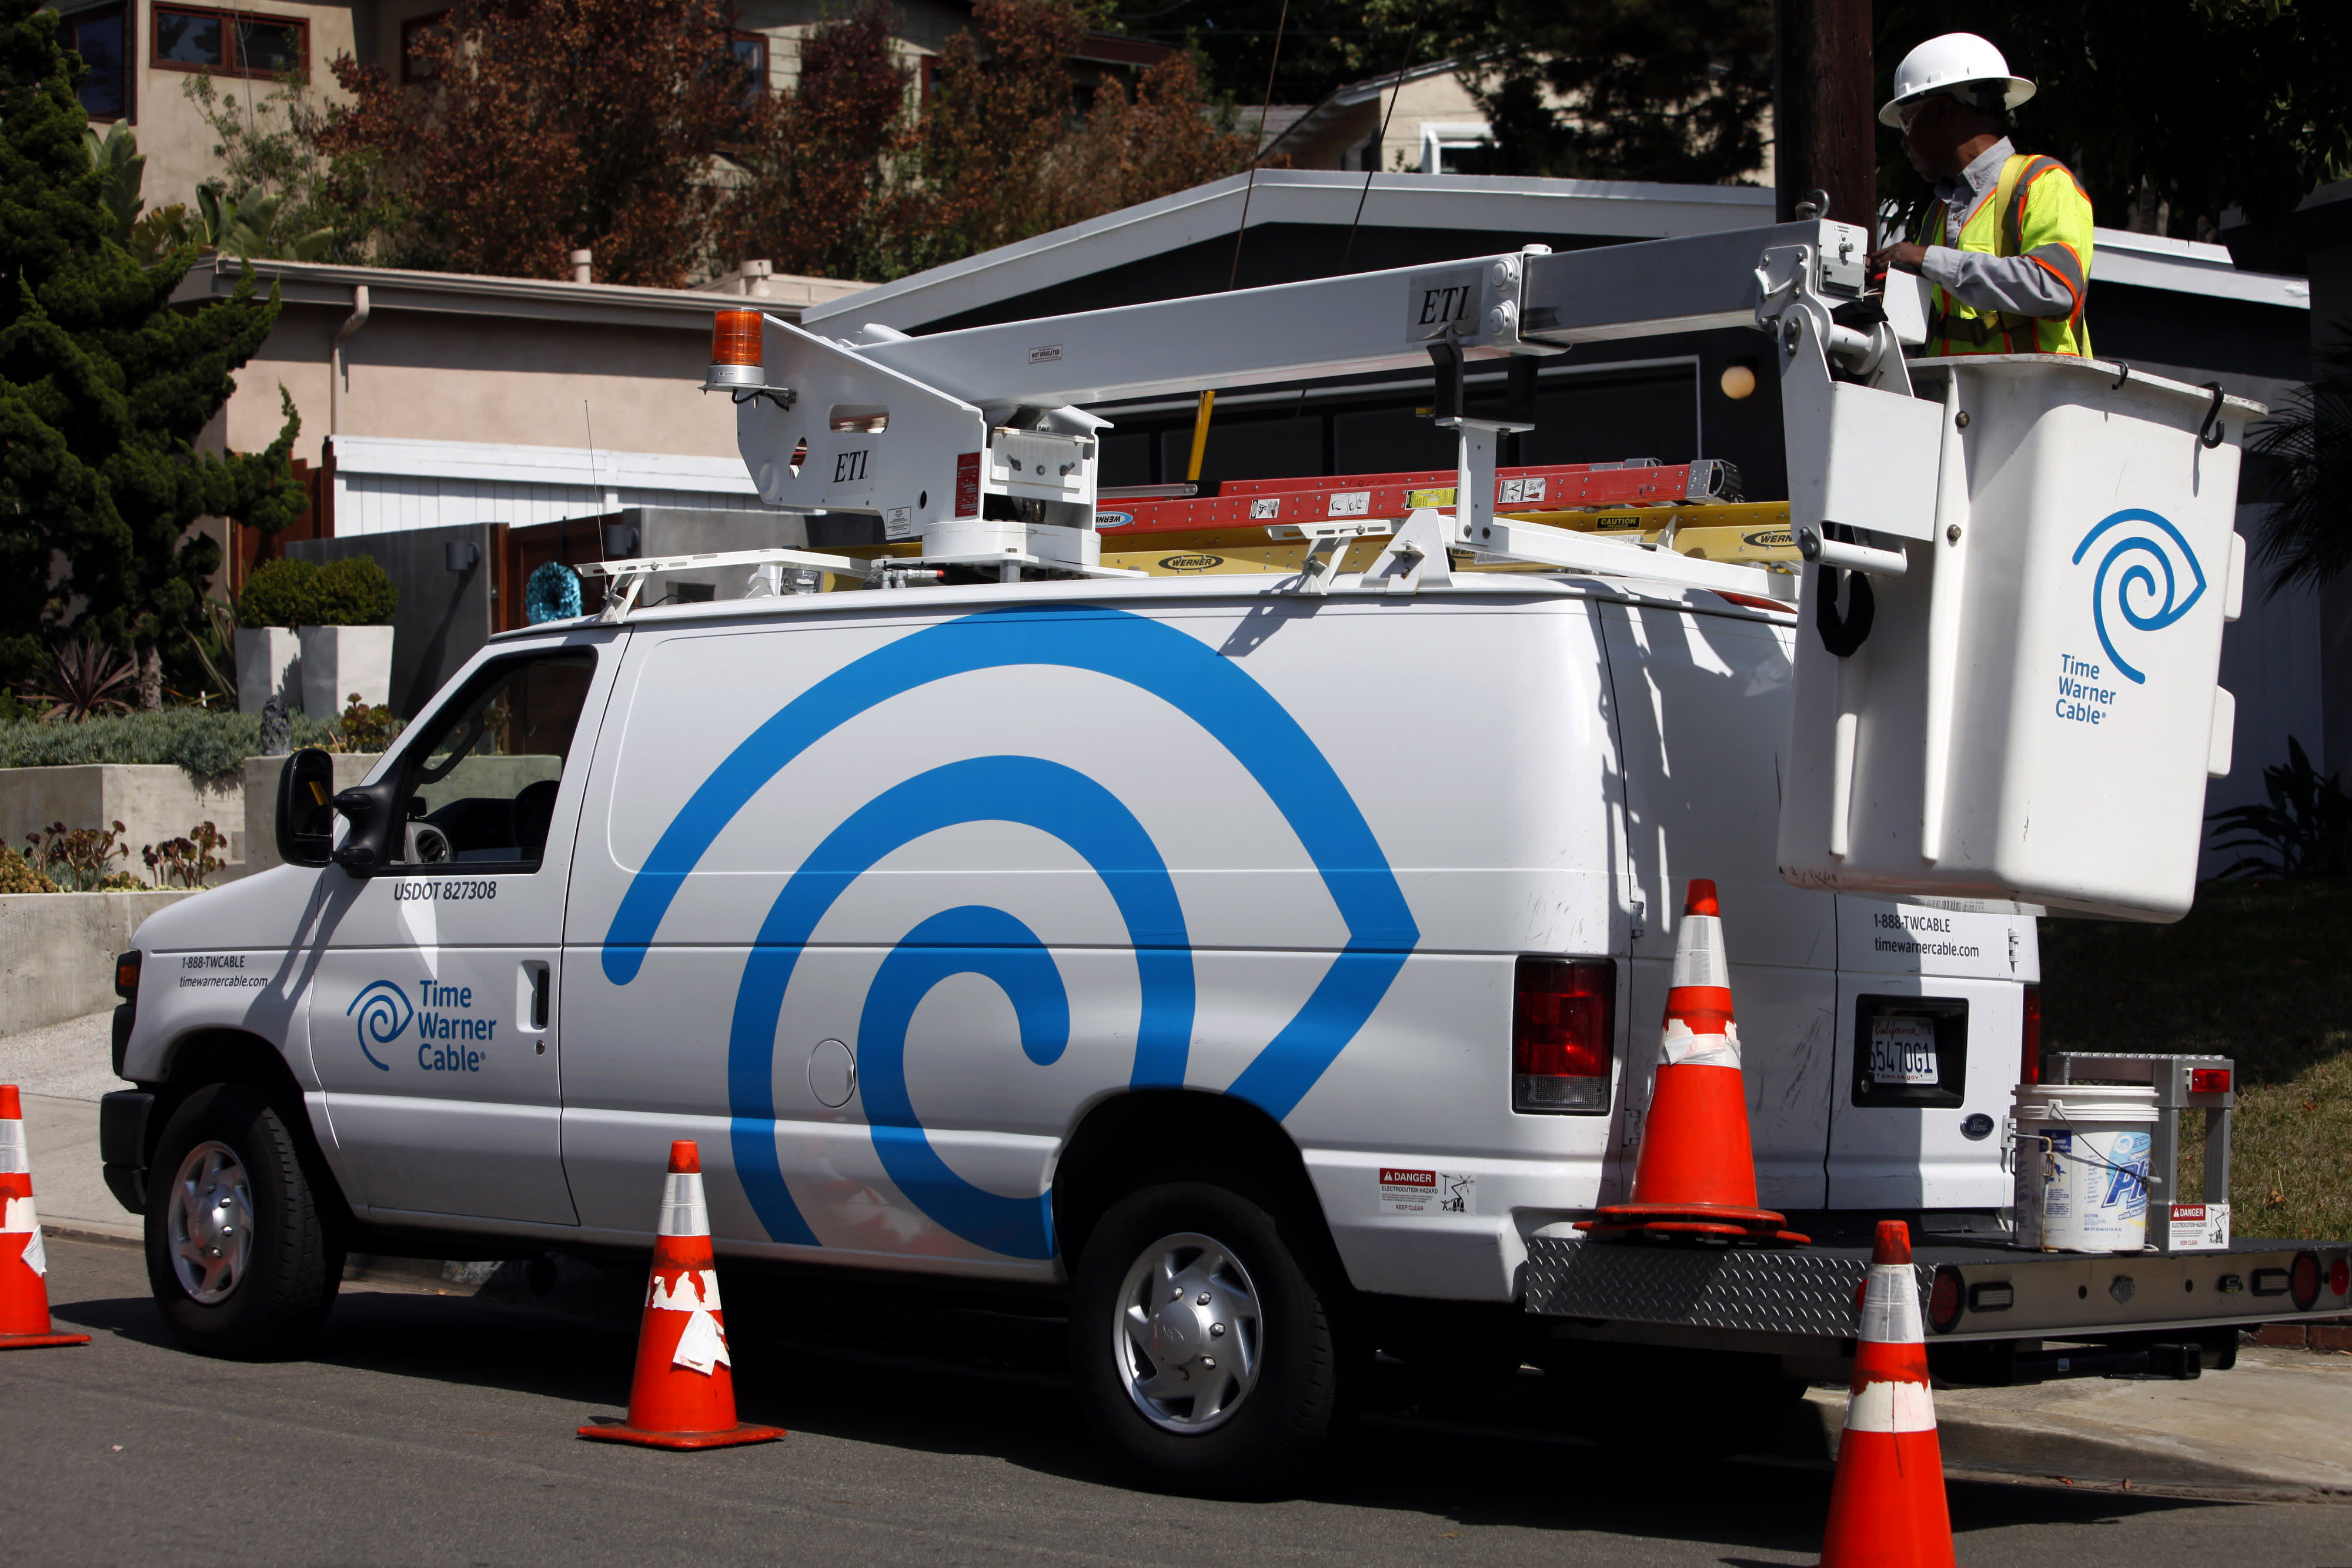 Twctime Warner Cable 888 Twcable: Comcast to buy Time Warner Cable in all stock dealrh:cnbc.com,Design